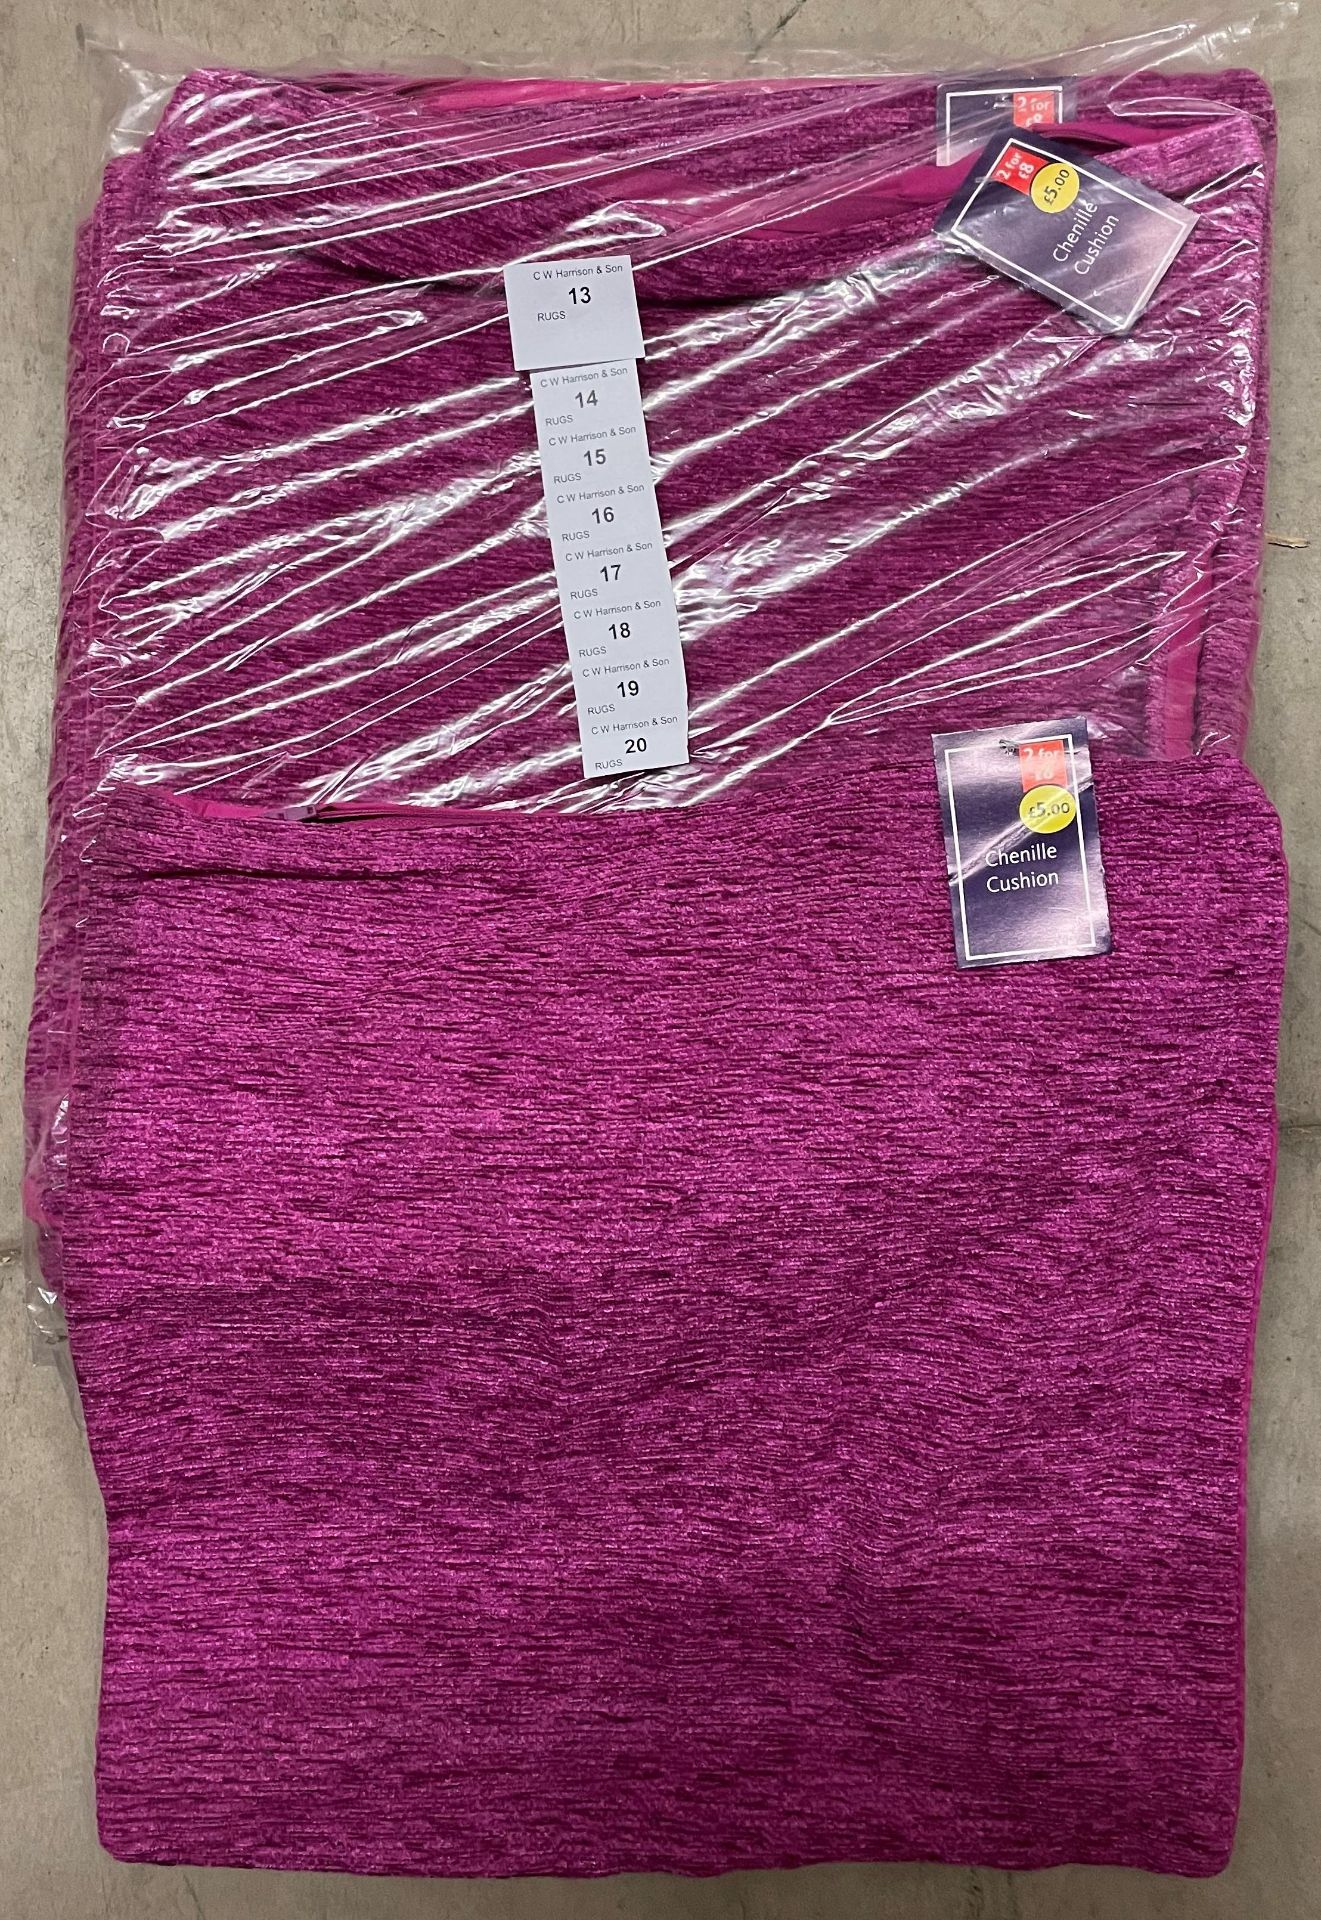 50 x Chenille cushion covers - plum - in packs of 10 (5 outer packs)